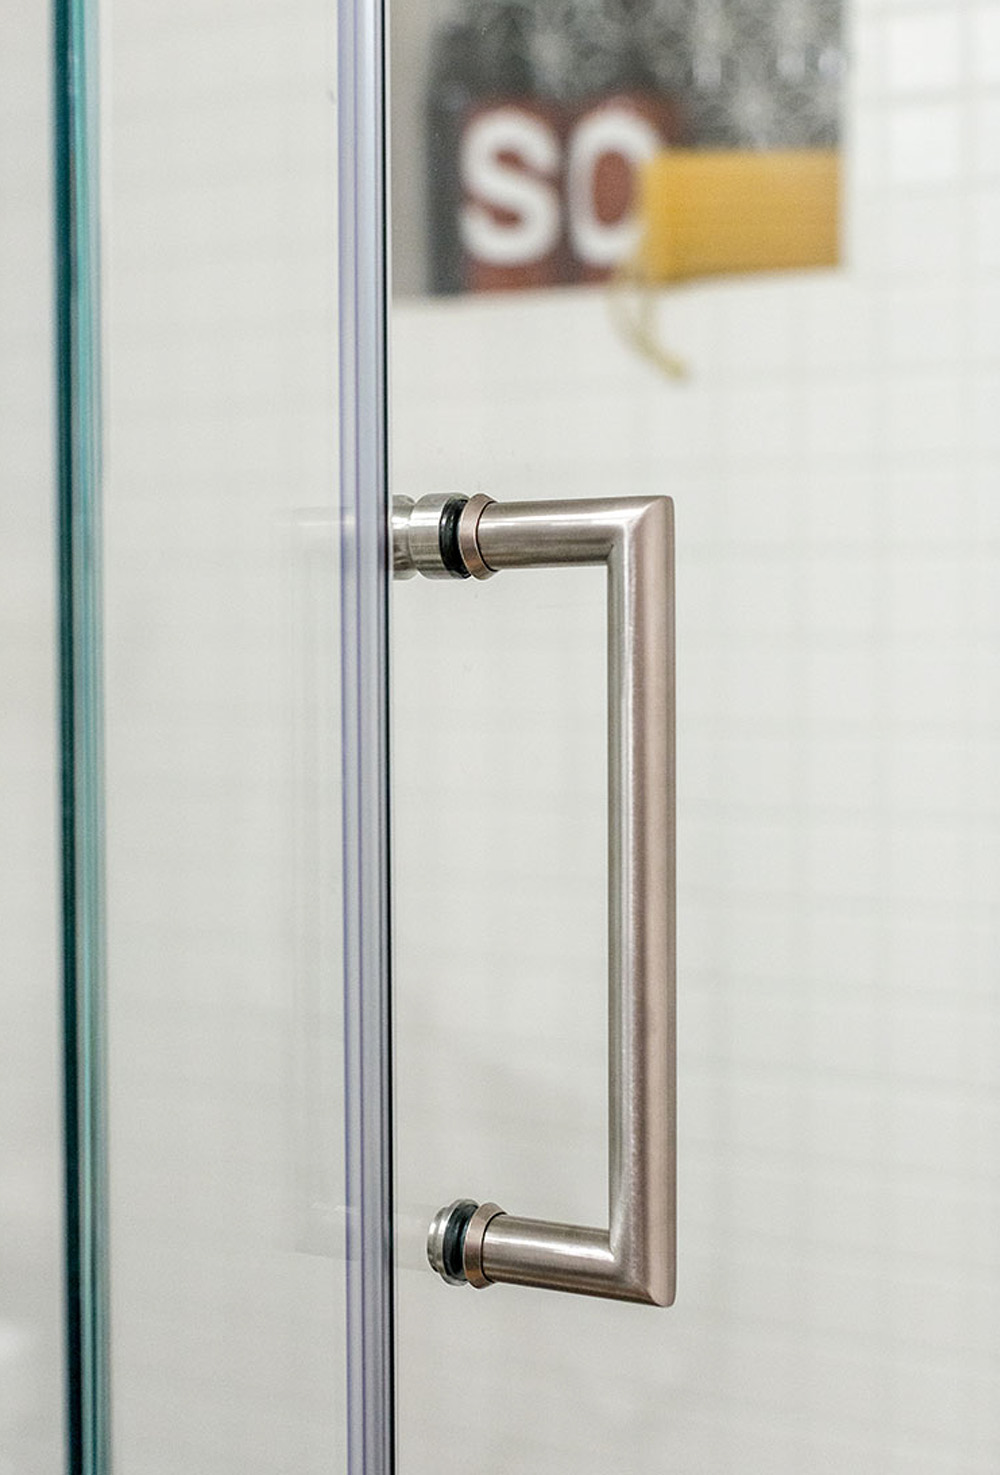 A silver handle on a glass shower door.